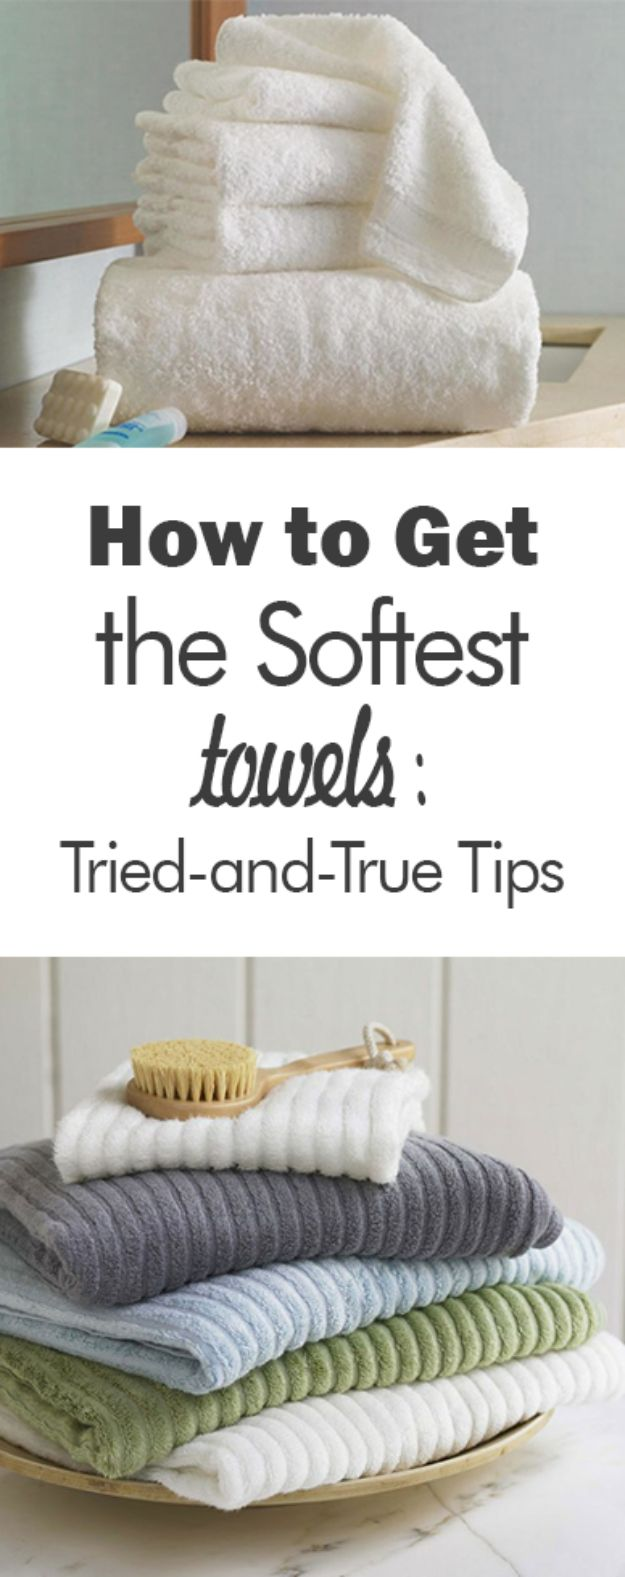 Laundry Hacks - Get the Softest Towels - Cool Tips for Busy Moms and Laundry Lifehacks - Laundry Room Organizing Ideas, Storage and Makeover - Folding, Drying, Cleaning and Stain Removal Tips for Clothes - How to Remove Stains, Paint, Ink and Smells - Whitening Tricks and Solutions - DIY Products and Recipes for Clothing Soaps http://diyjoy.com/laundry-hacks